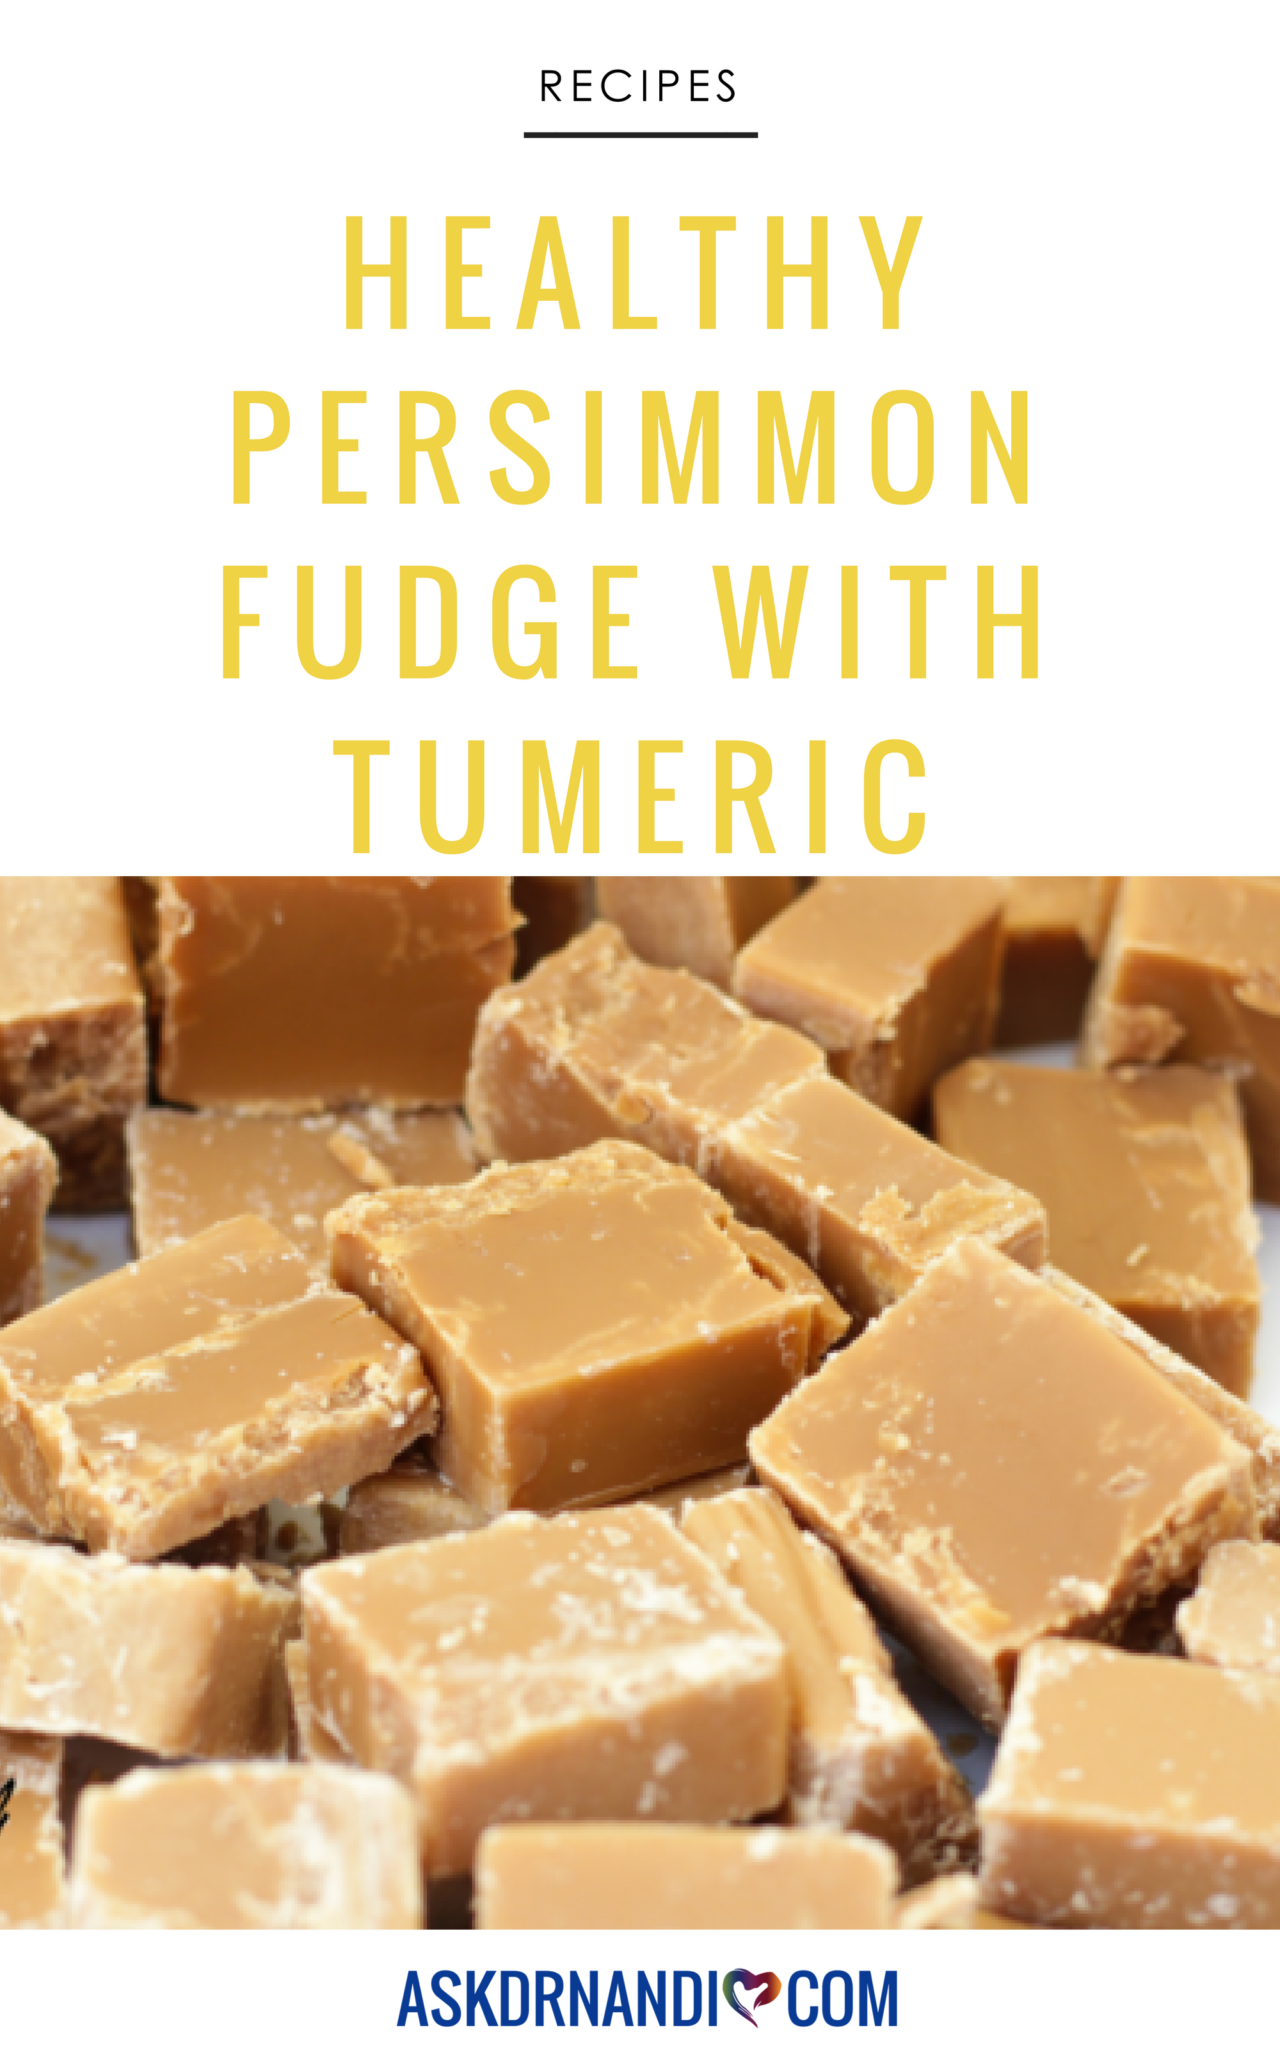 Persimmon Fudge with Turmeric